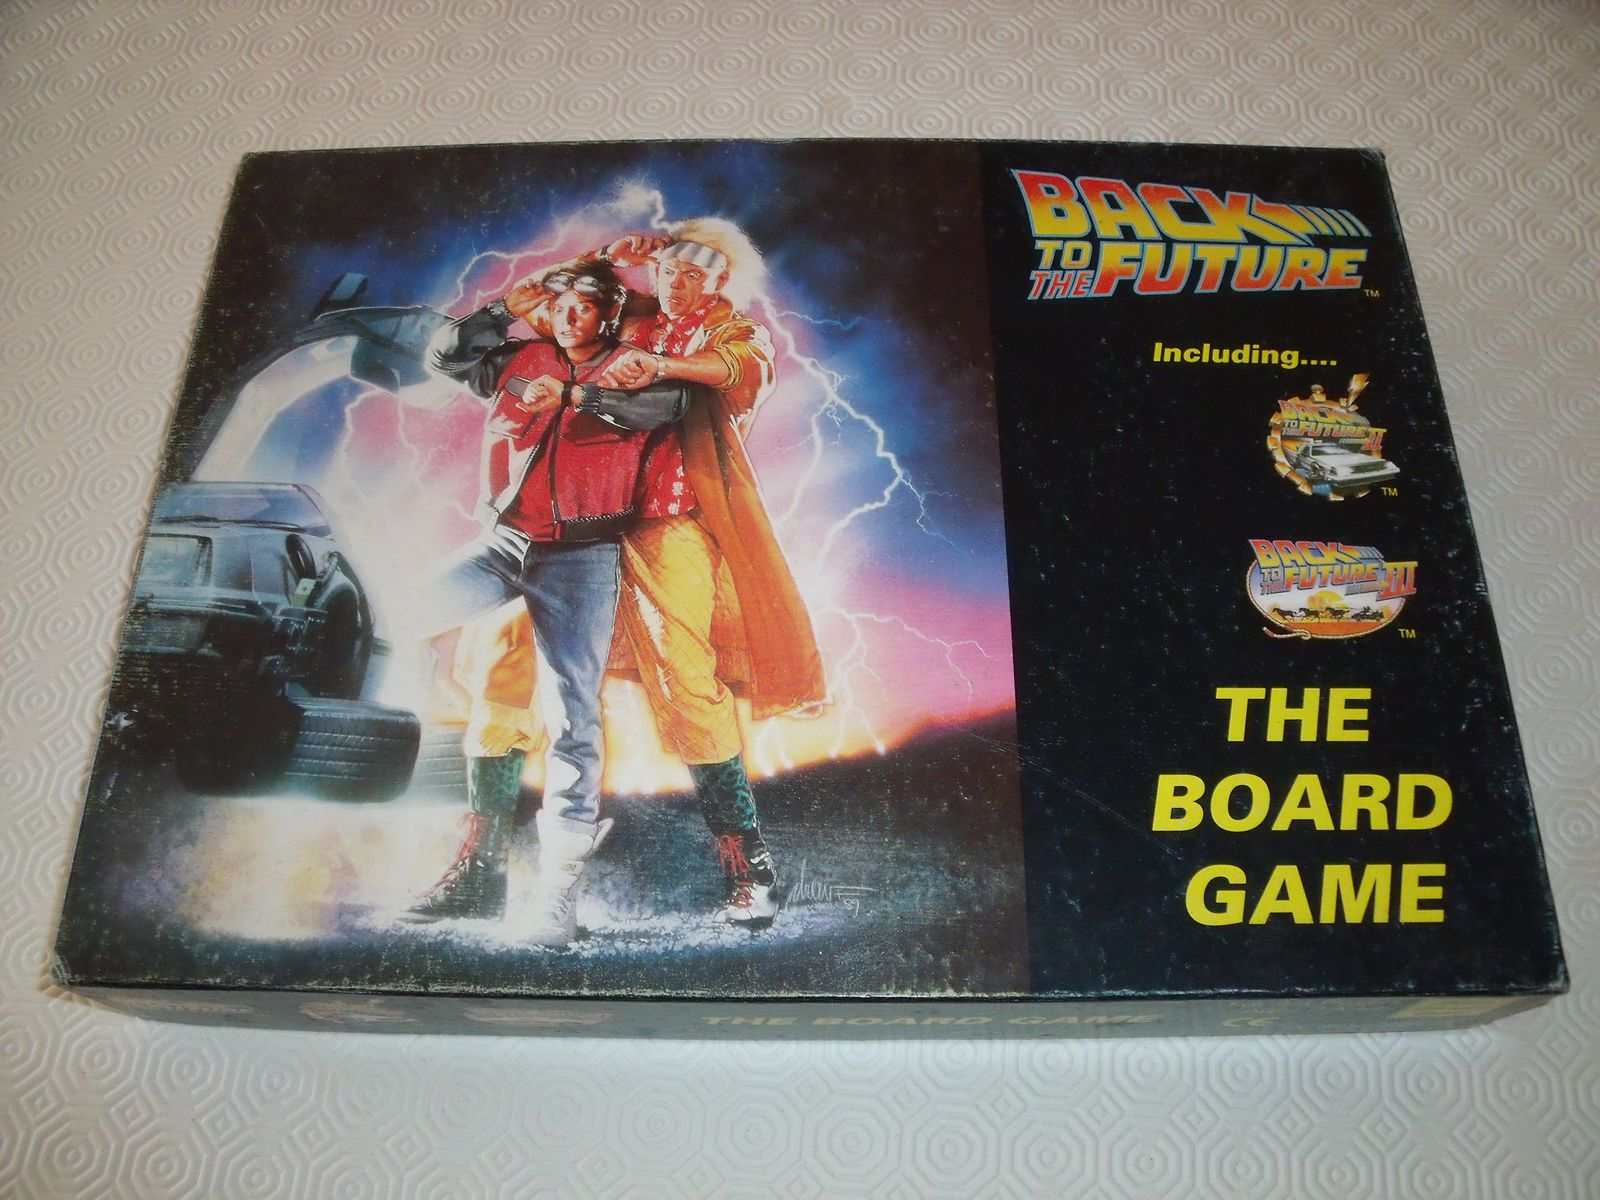 Mes amours 5.3.2 : Chronique de &quot&#x3B;Back to the Future - The Board Game&quot&#x3B;